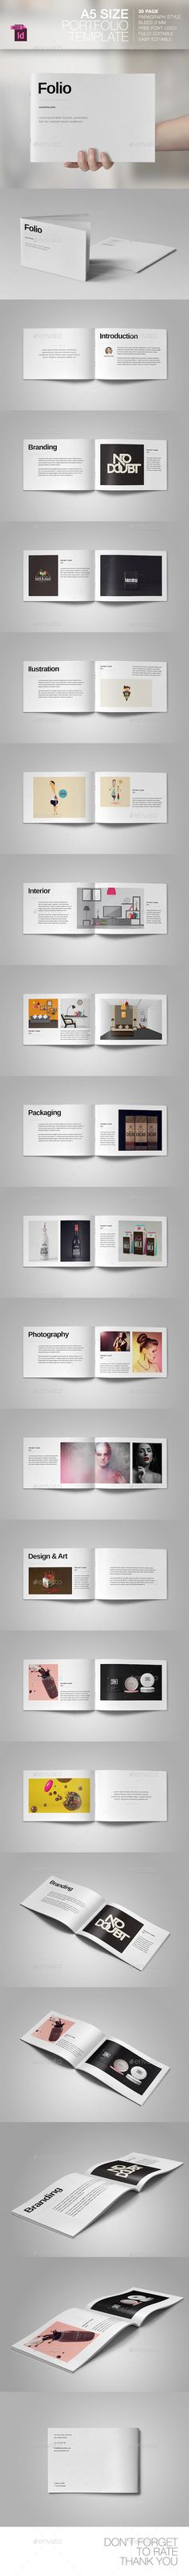 A5 Portfolio Template  #minimal #swiss • Click here to download ! http://graphicriver.net/item/a5-portfolio-template/9496625?s_rank=185&ref=pxcr